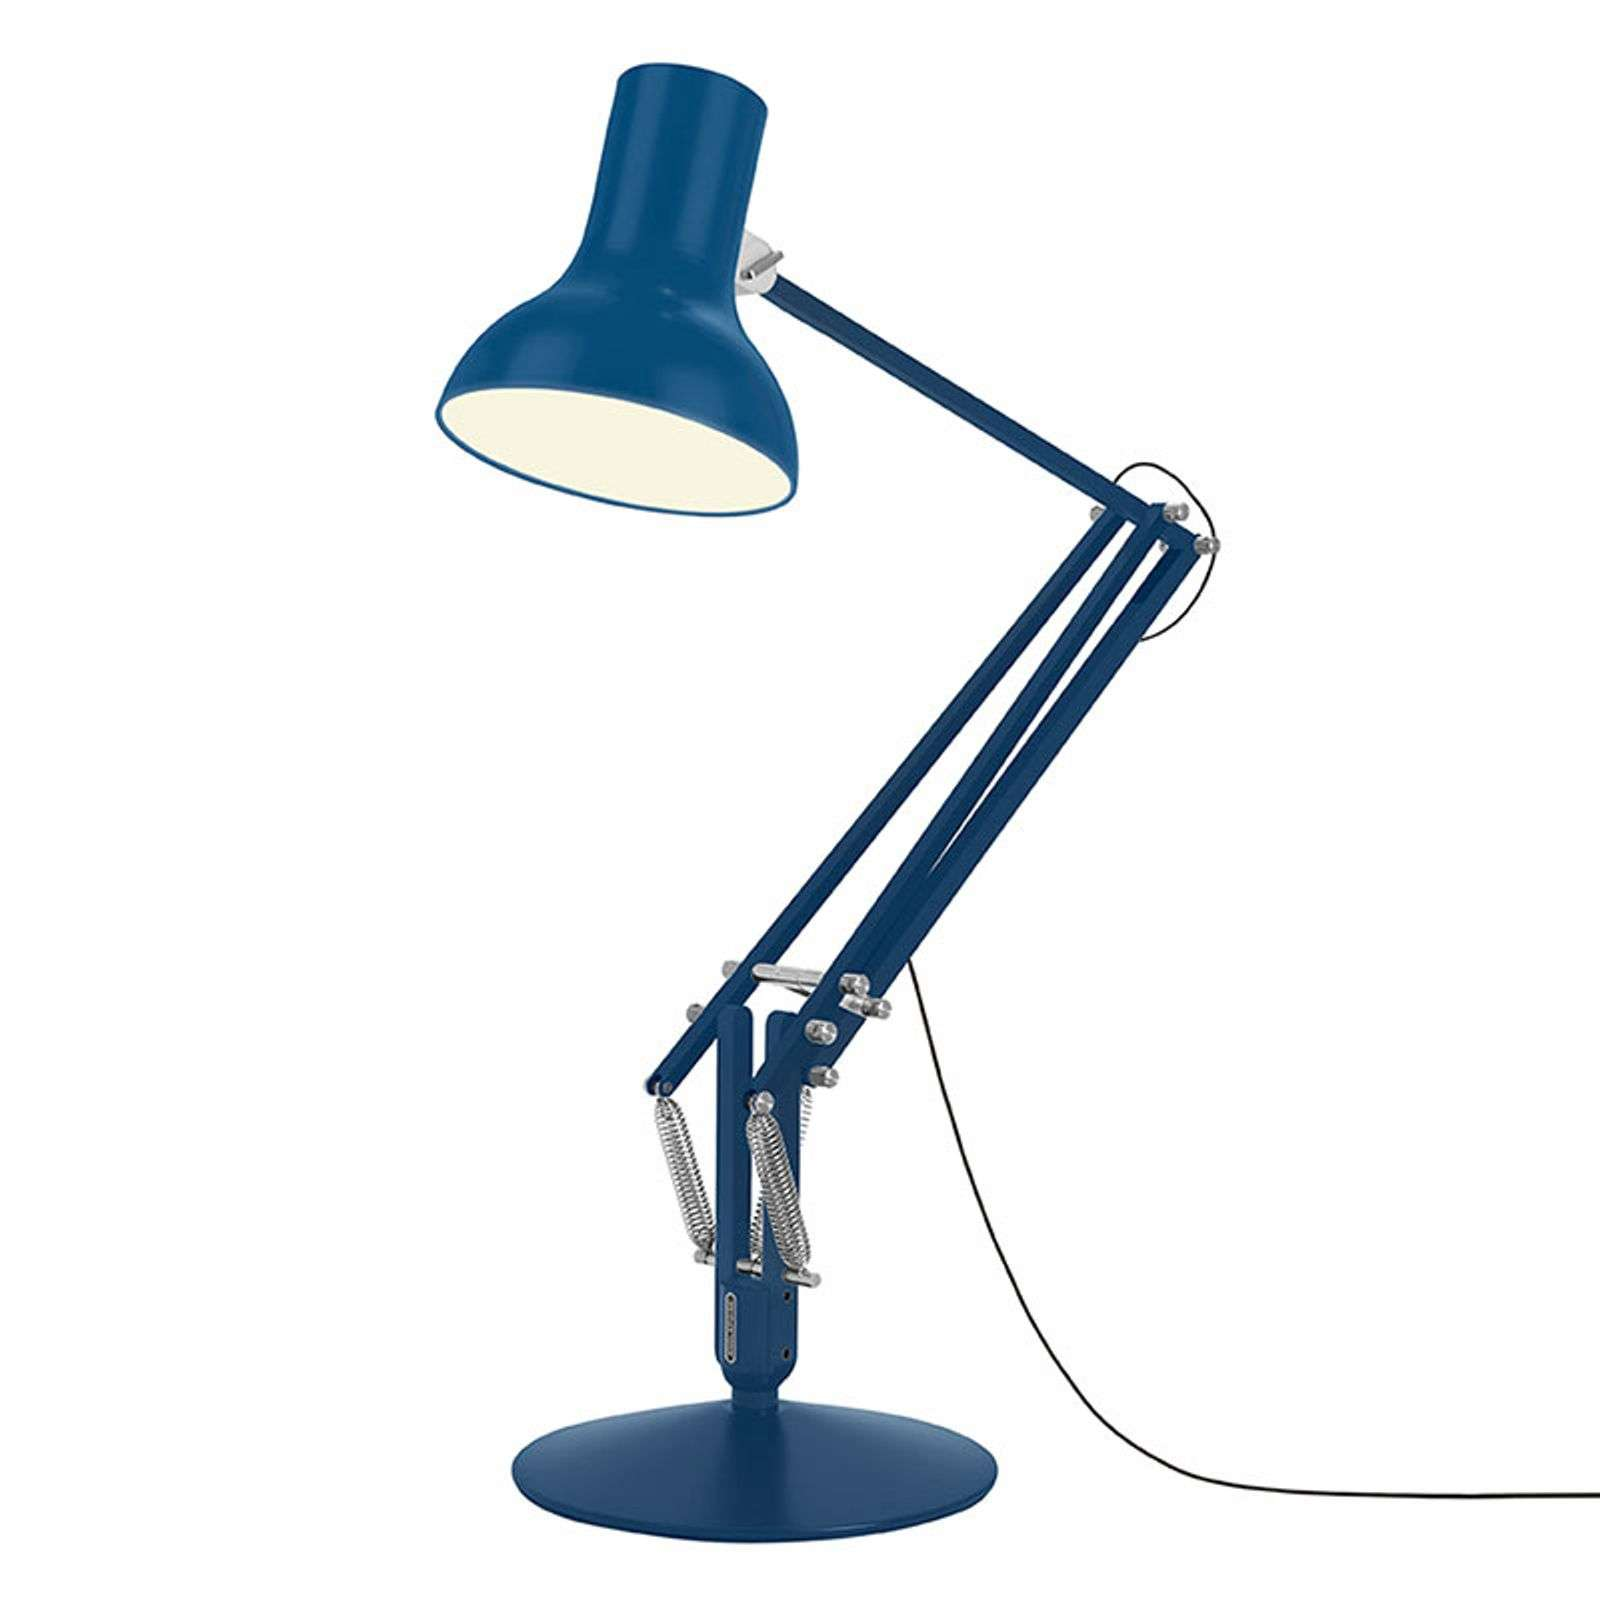 Anglepoise Type 75 Giant lampadaire bleu